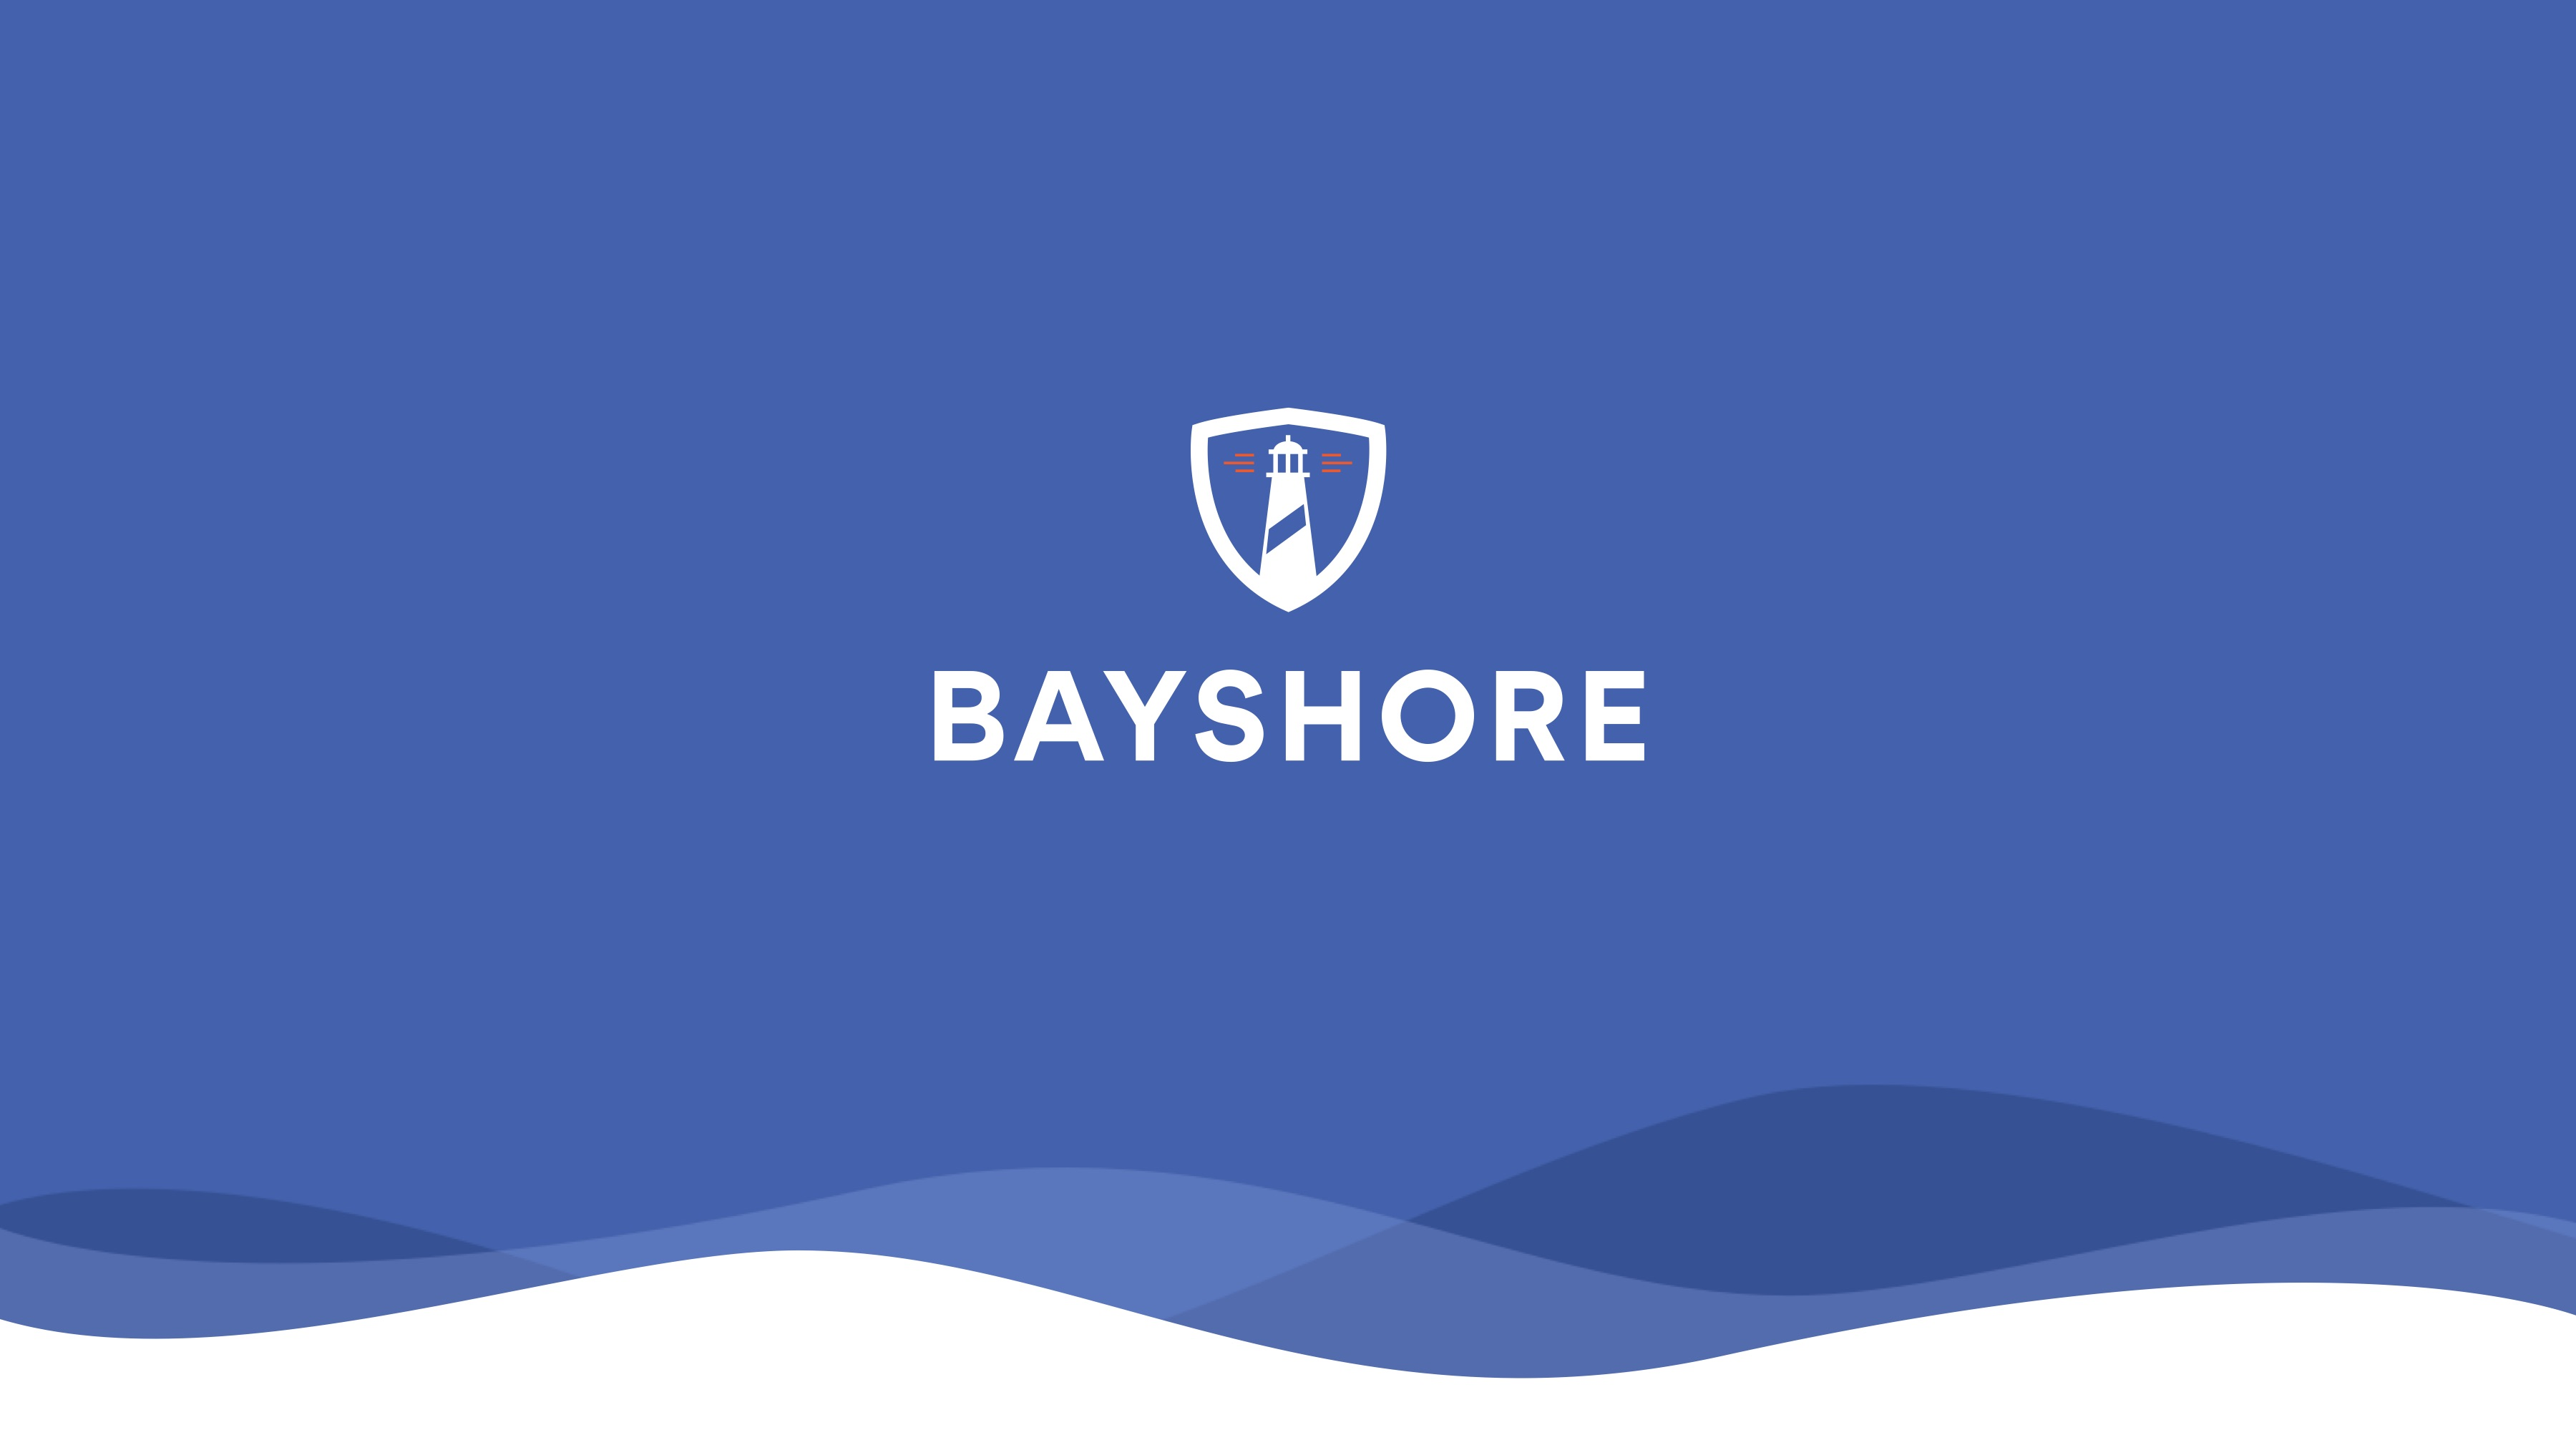 bayshore-stacked-waves